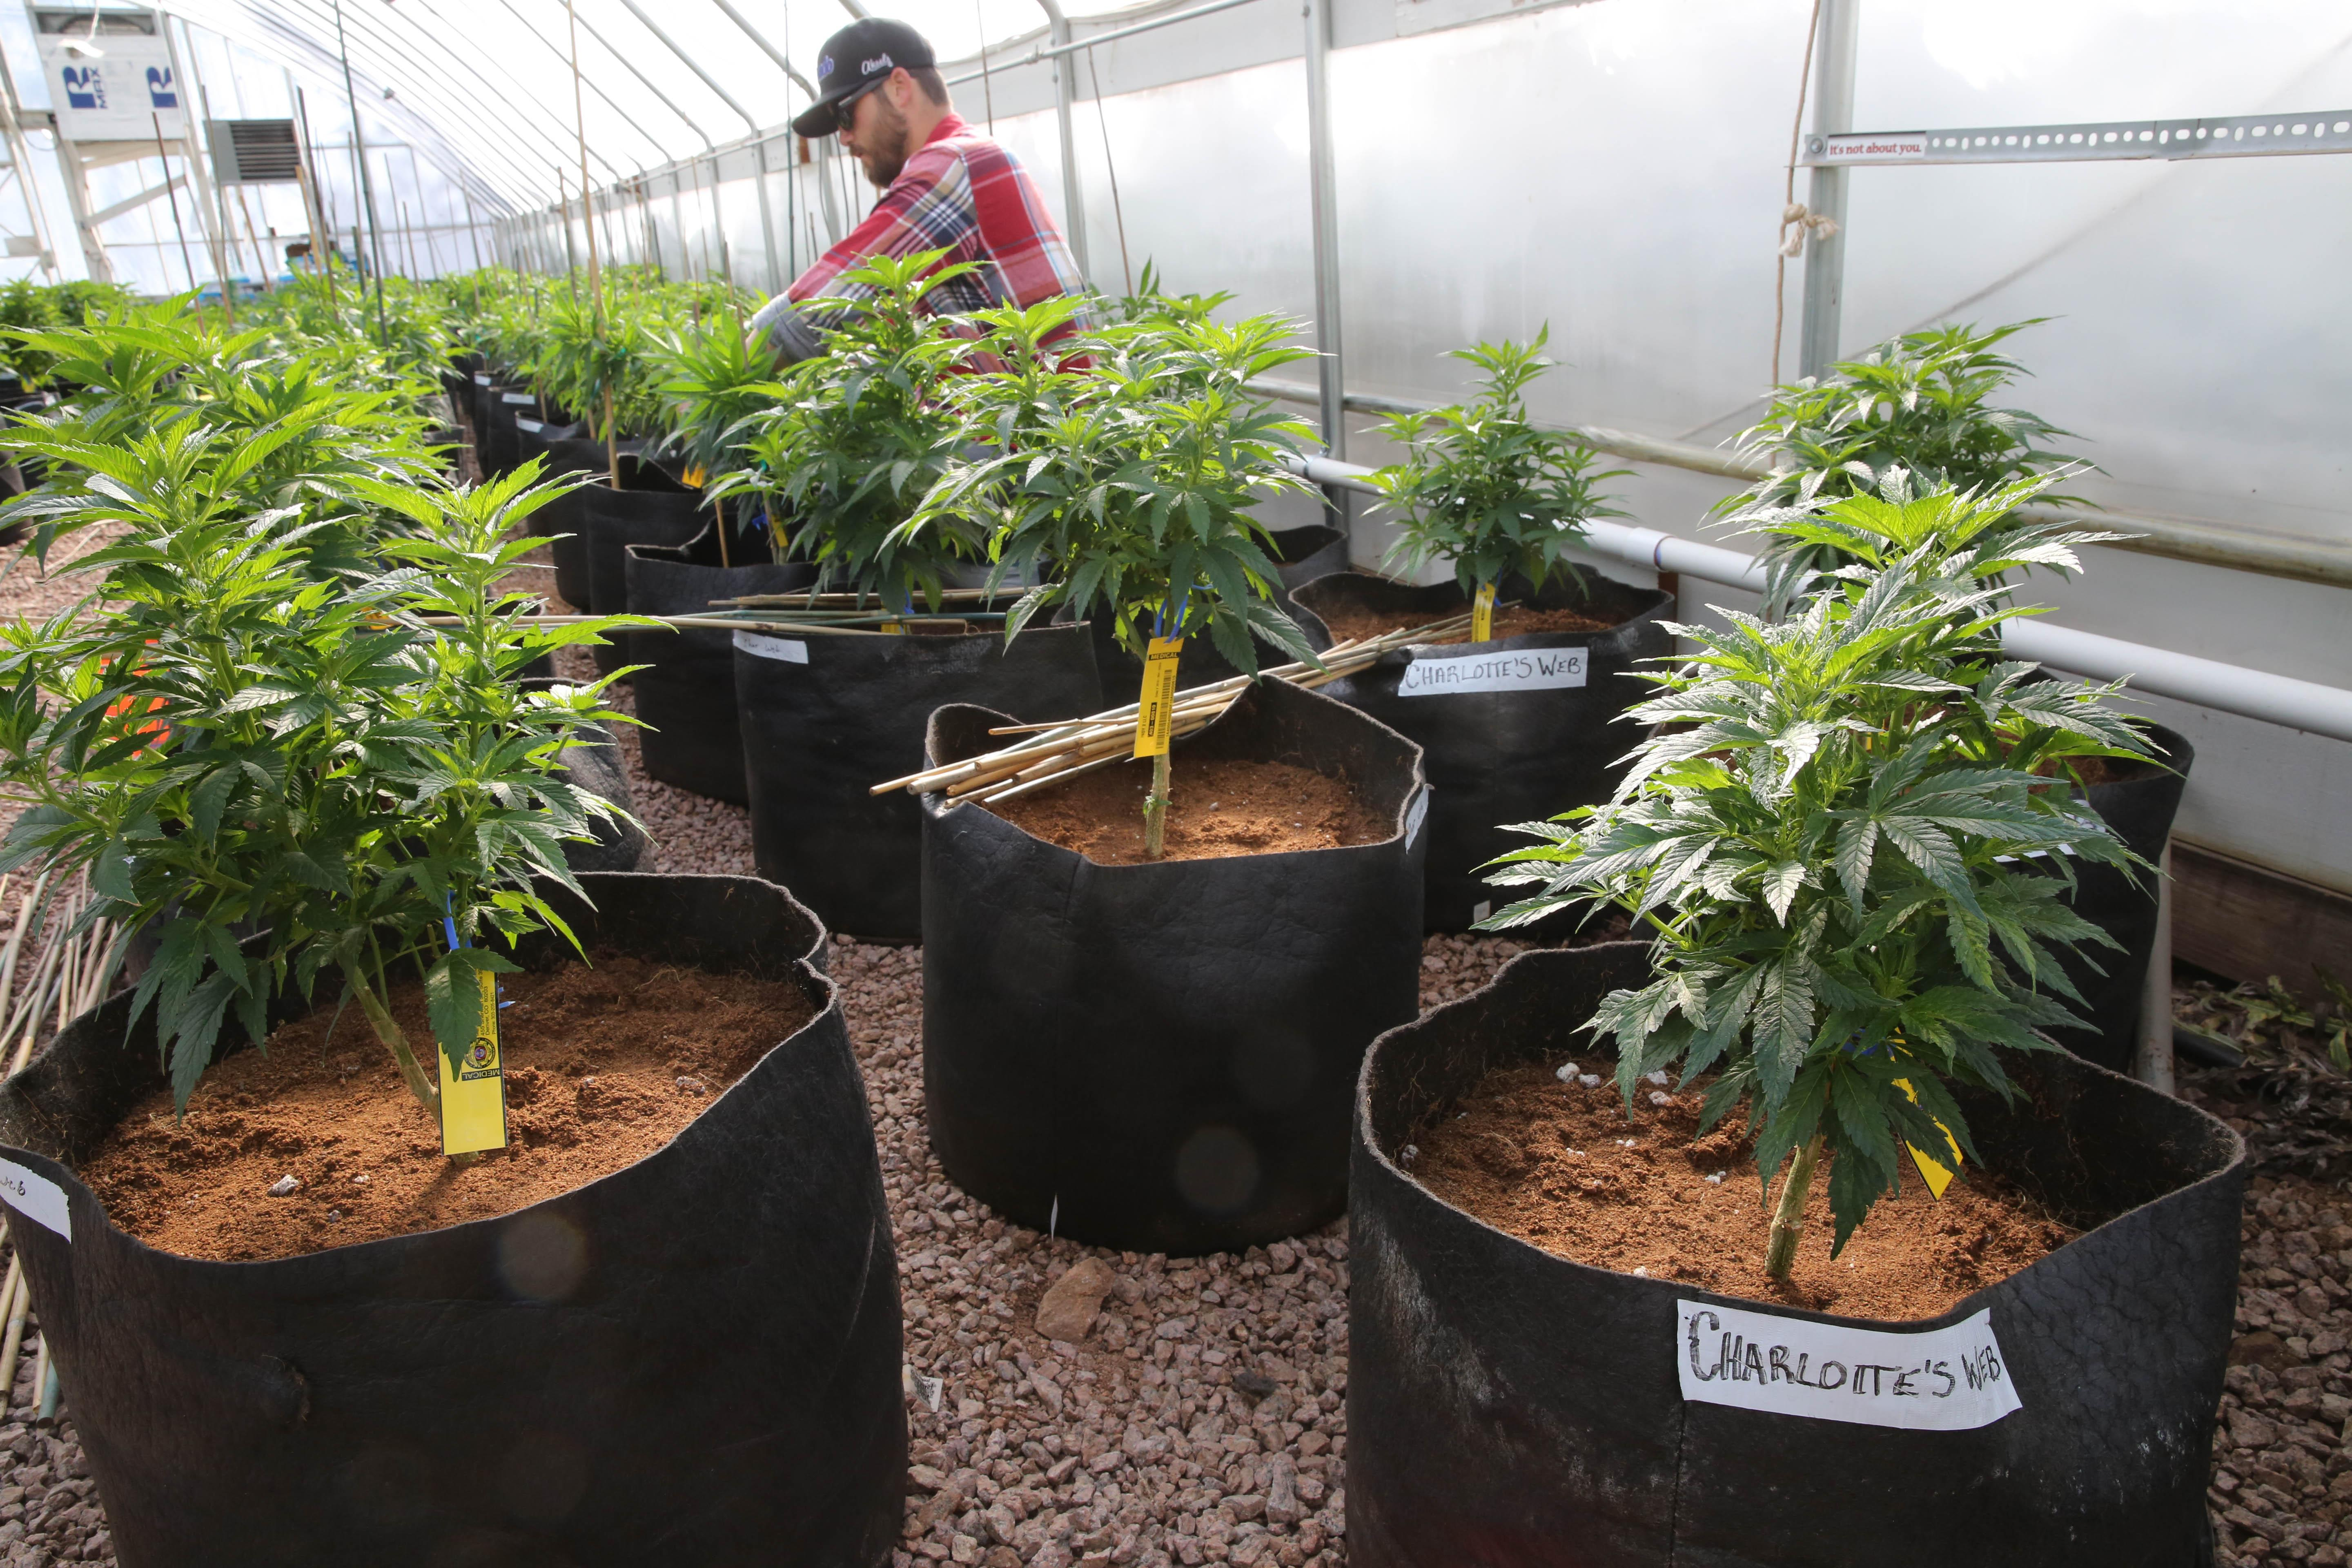 Legalized pot in Colorado: a year in review